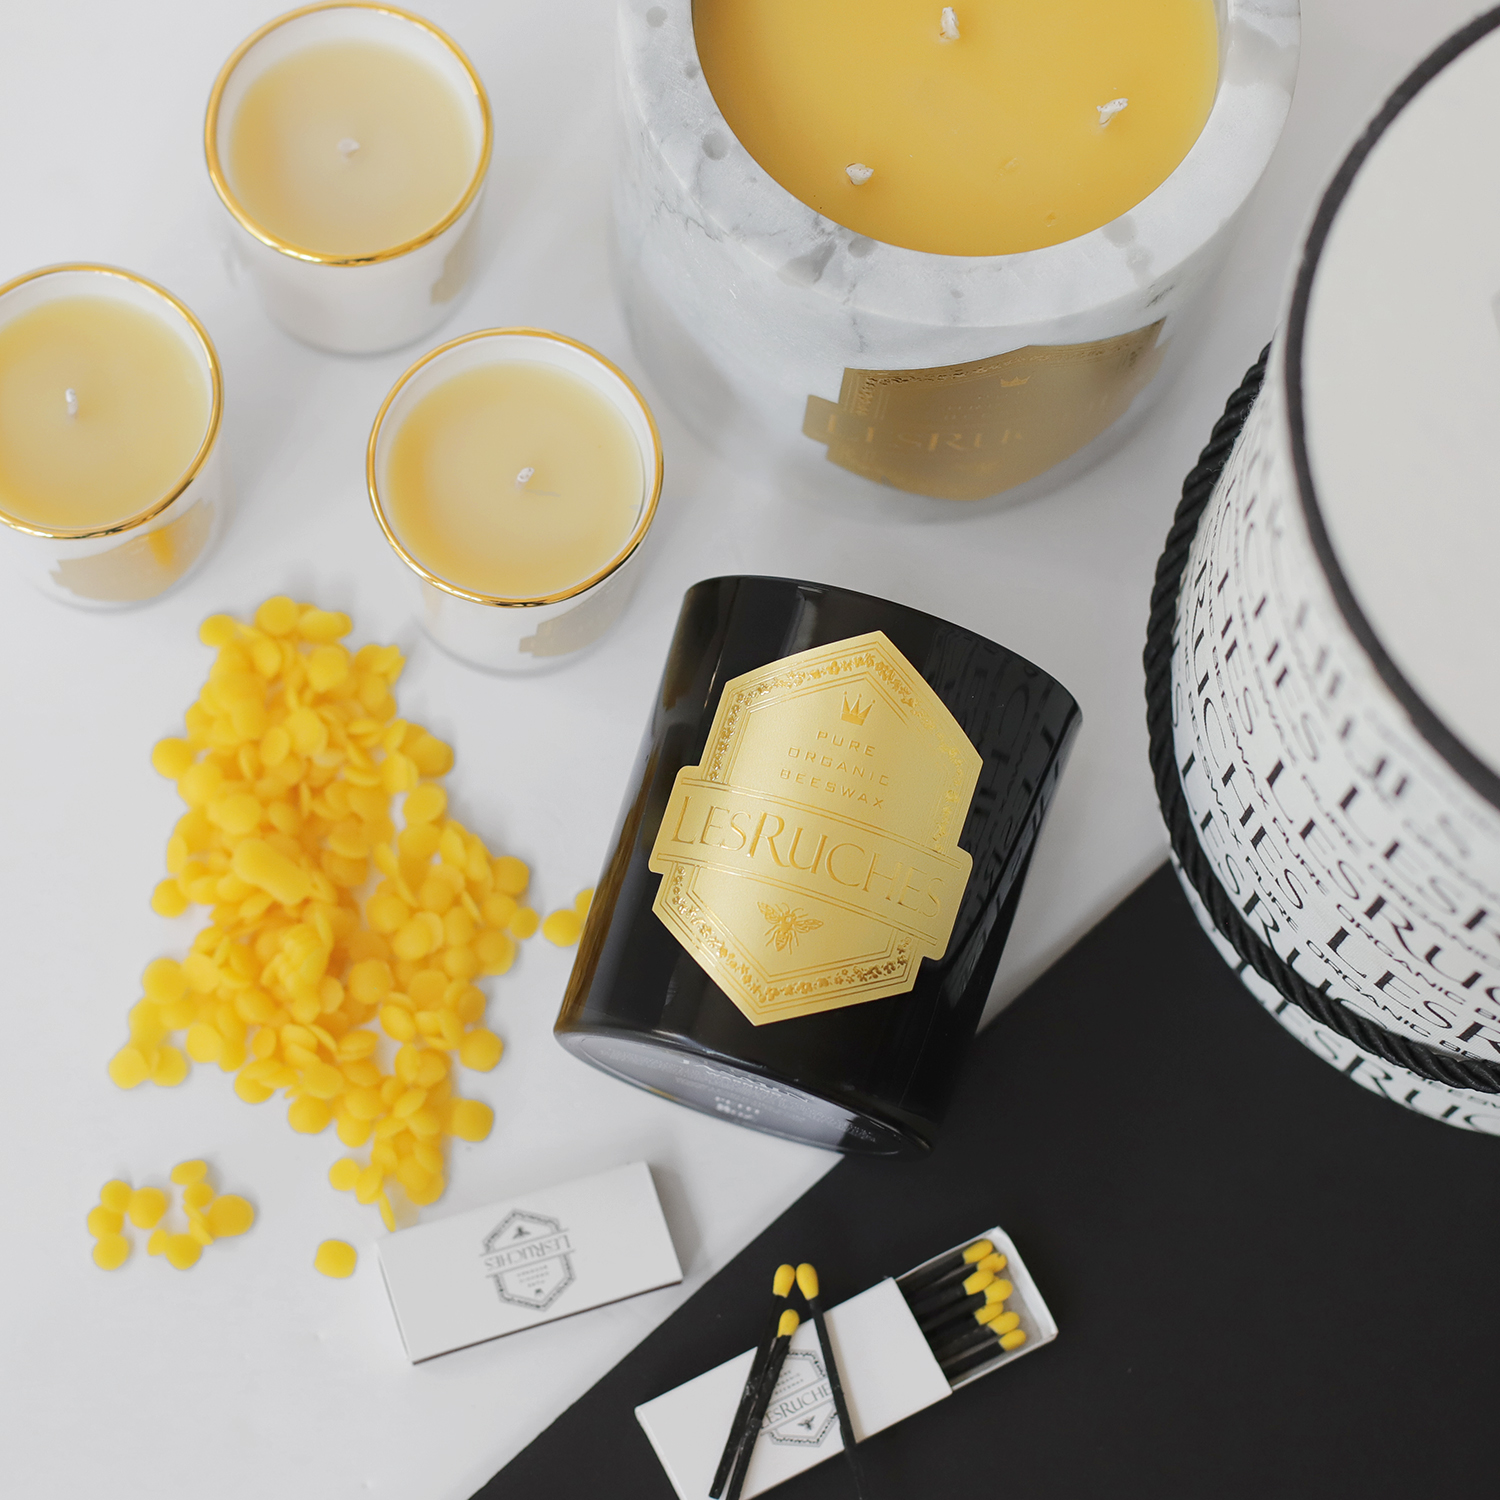 lesruches-candle-with-beeswax-pastilles-full-candles-matchbook-lesruches-candle-making-spread